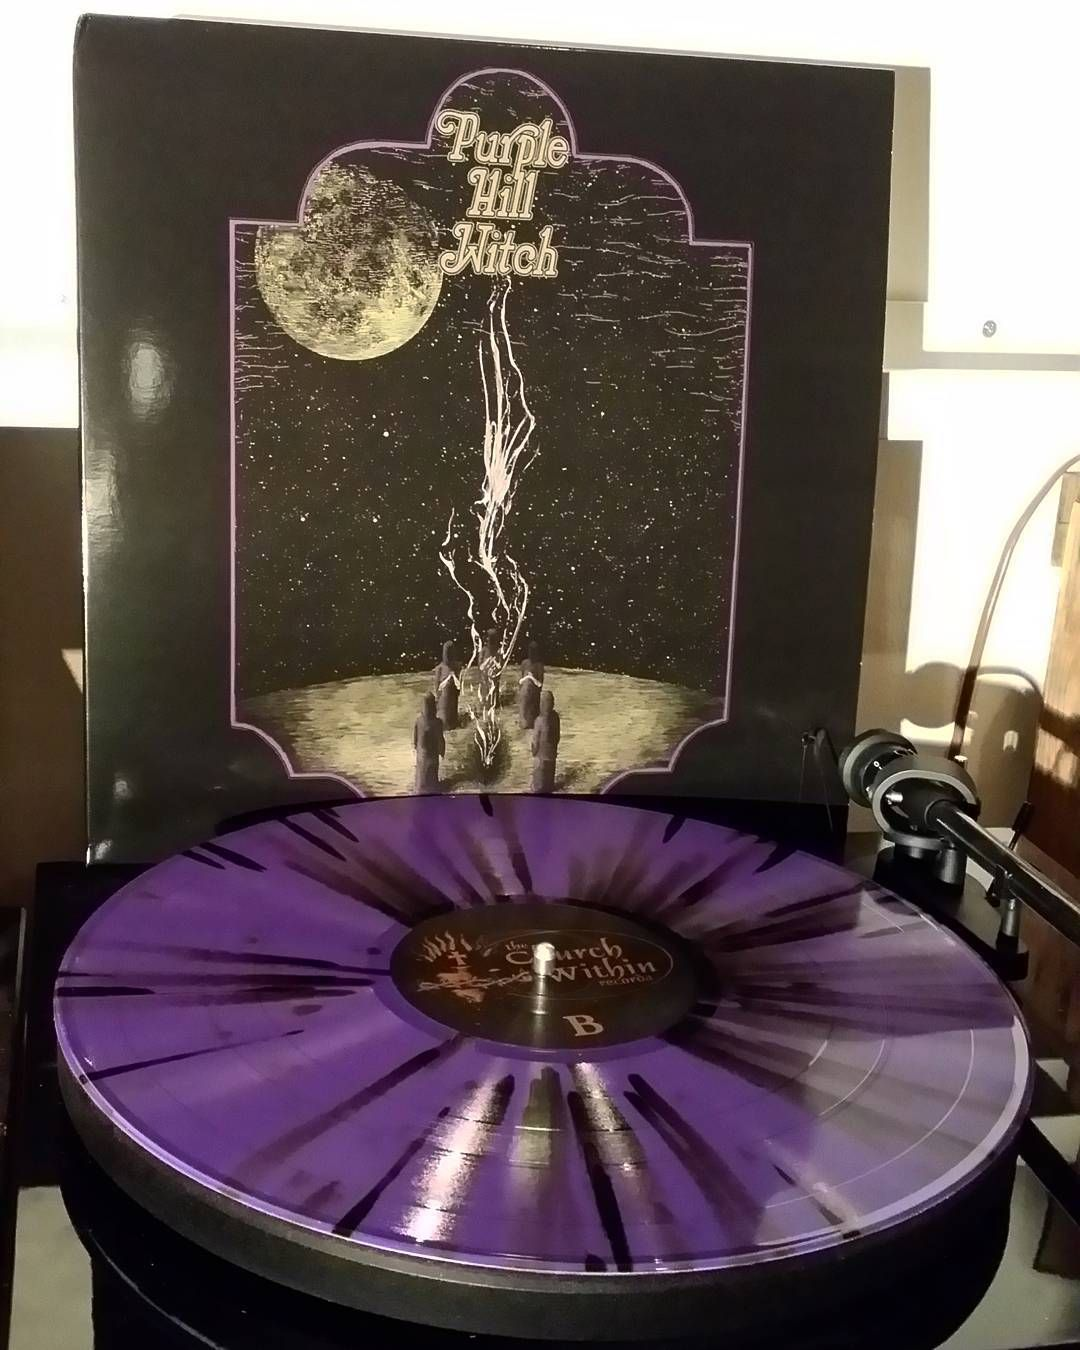 Purple Hill Witch -s/t Purple/black splatter vinyl. Norwegian sabbath worship at its finest. You need this.  #purplehillwitch #sabbathworship #doom #stonerdoom #stonerrock #vinyl #coloredvinyl #vinyloftheday #vinylcollection #nowspinning #nowplaying #thechurchwithinrecords by badspit